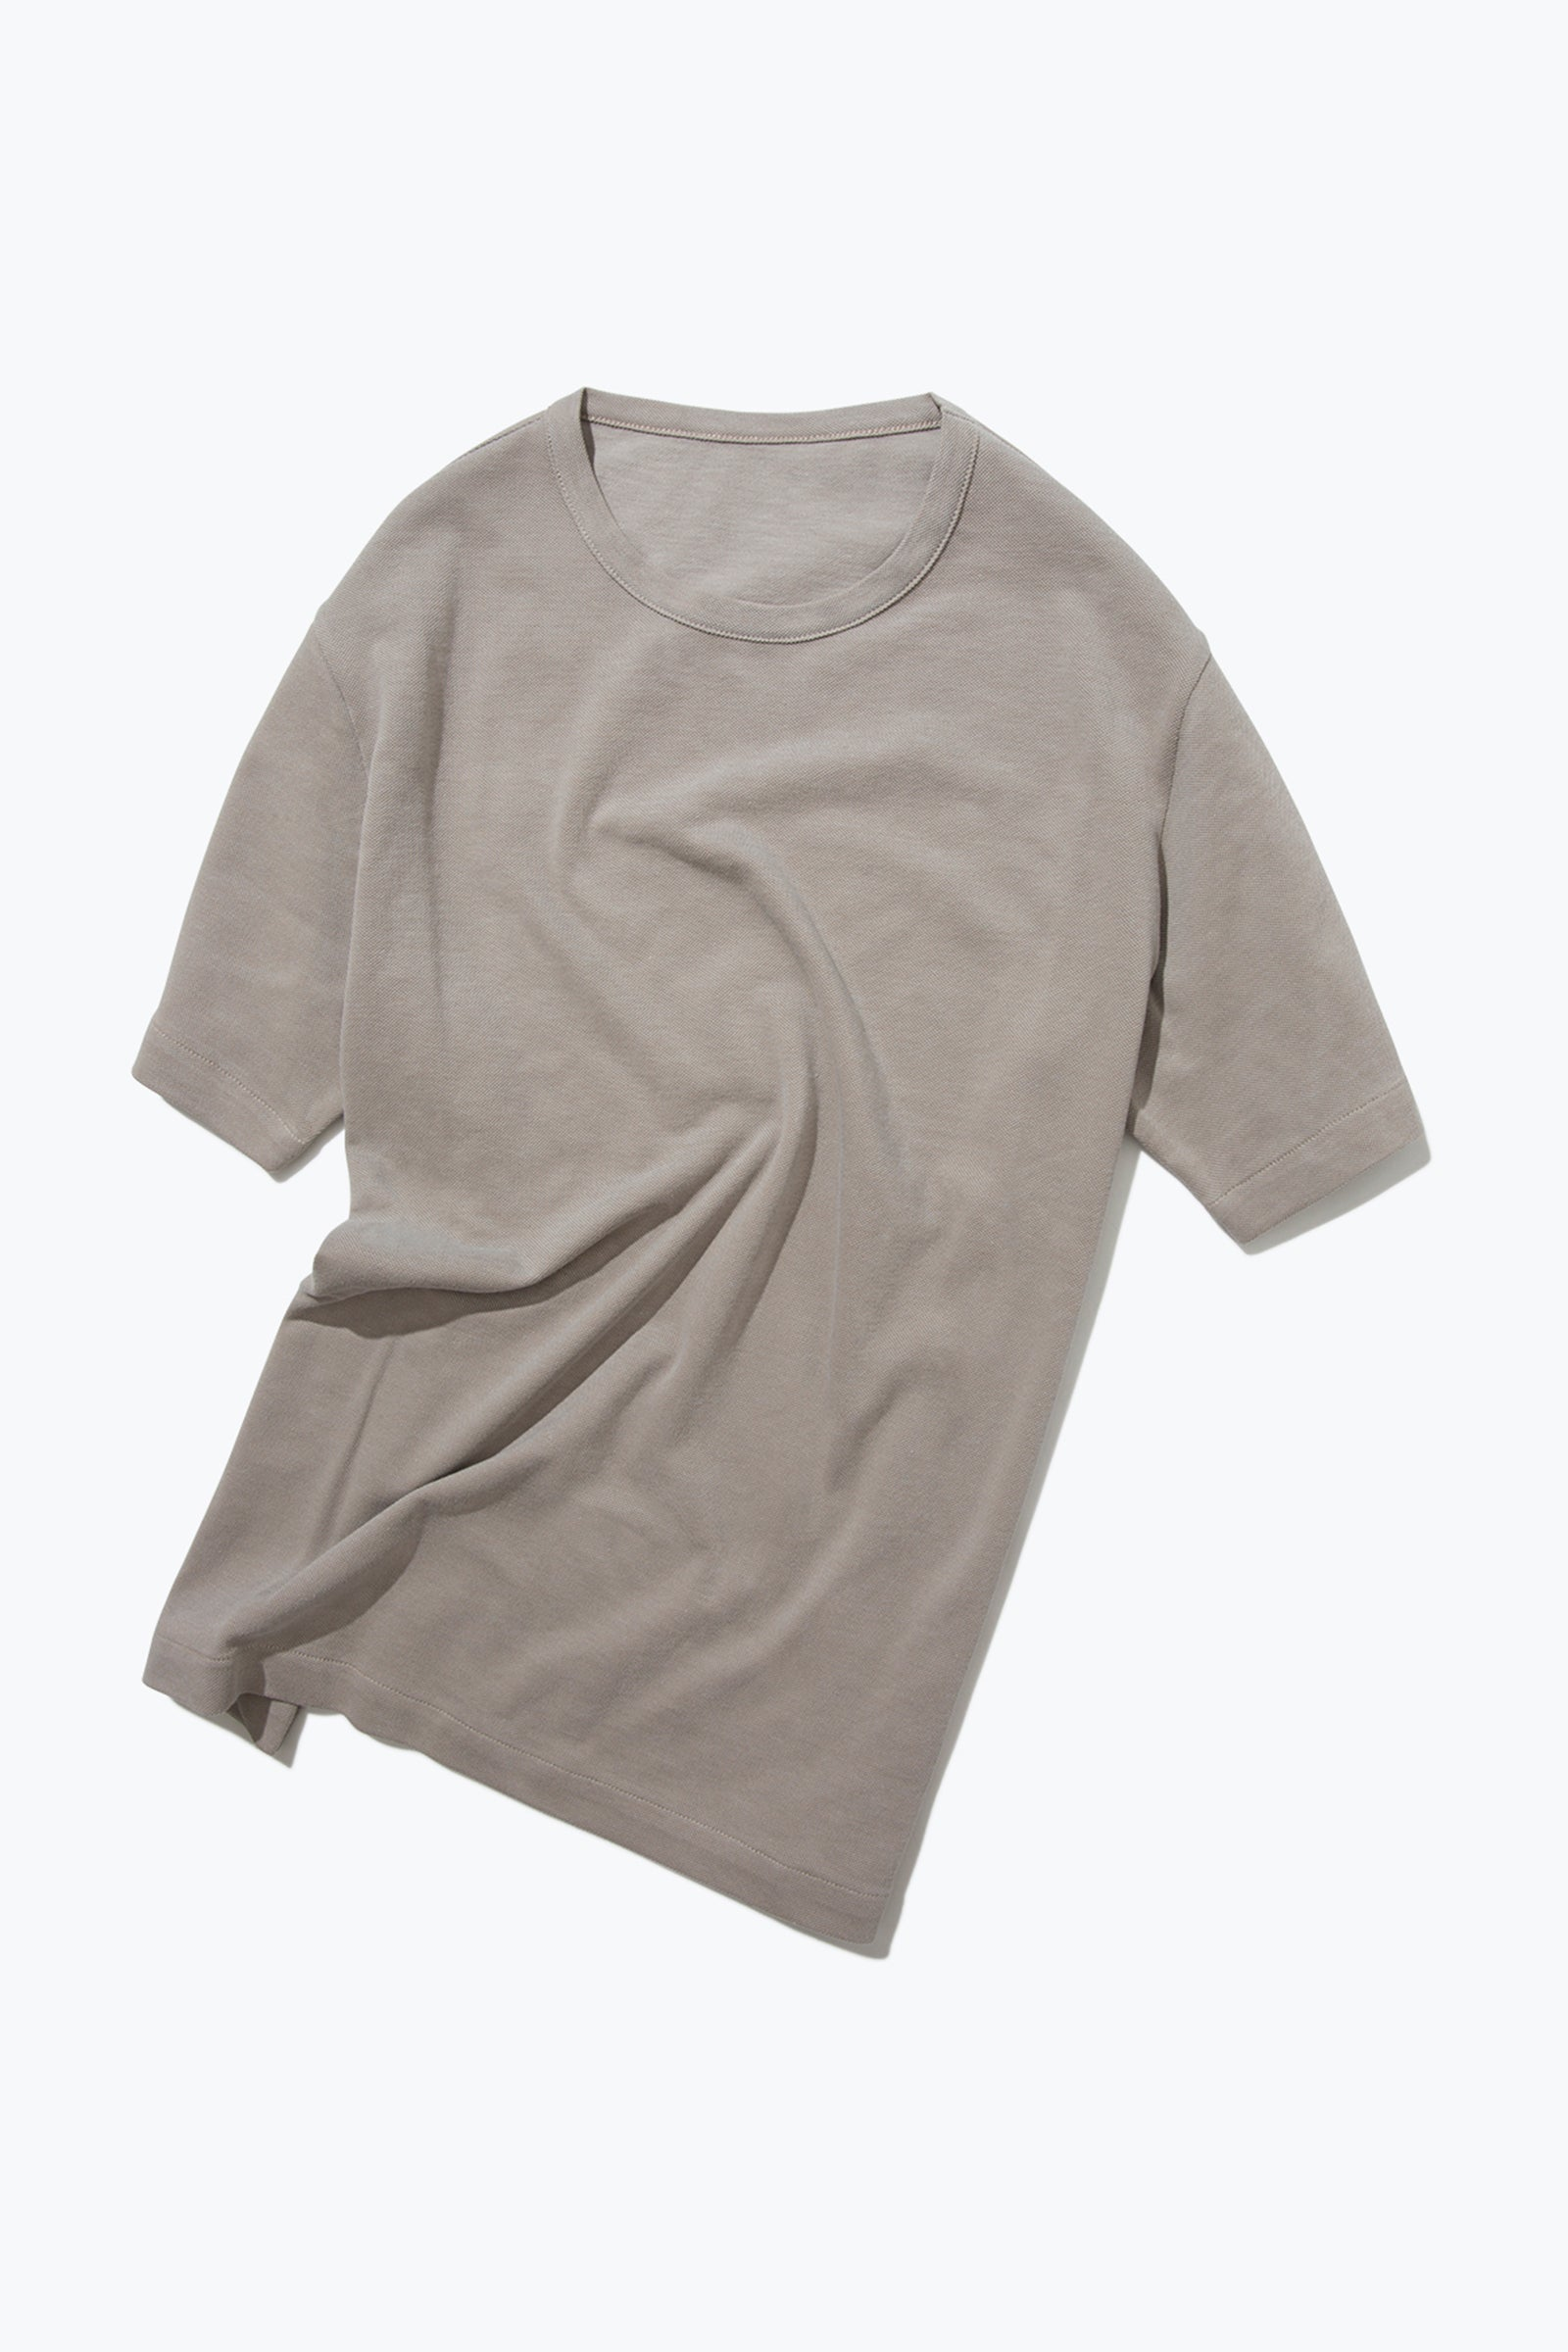 Knitwear - T Shirt (Taupe)